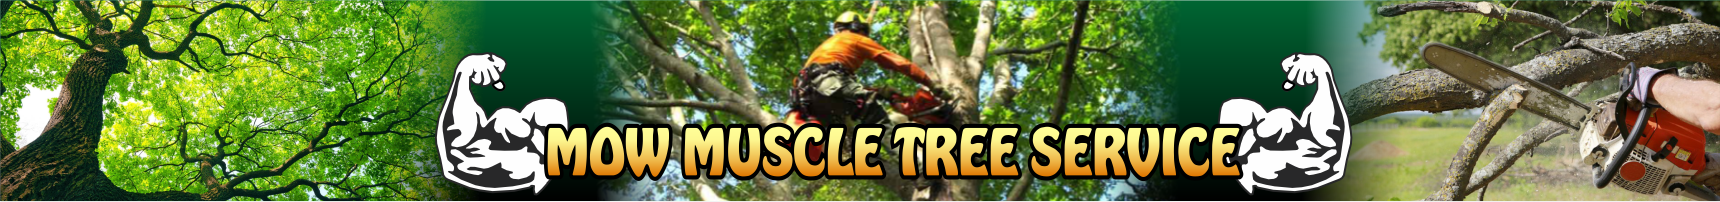 Mow Muscle Tree Services